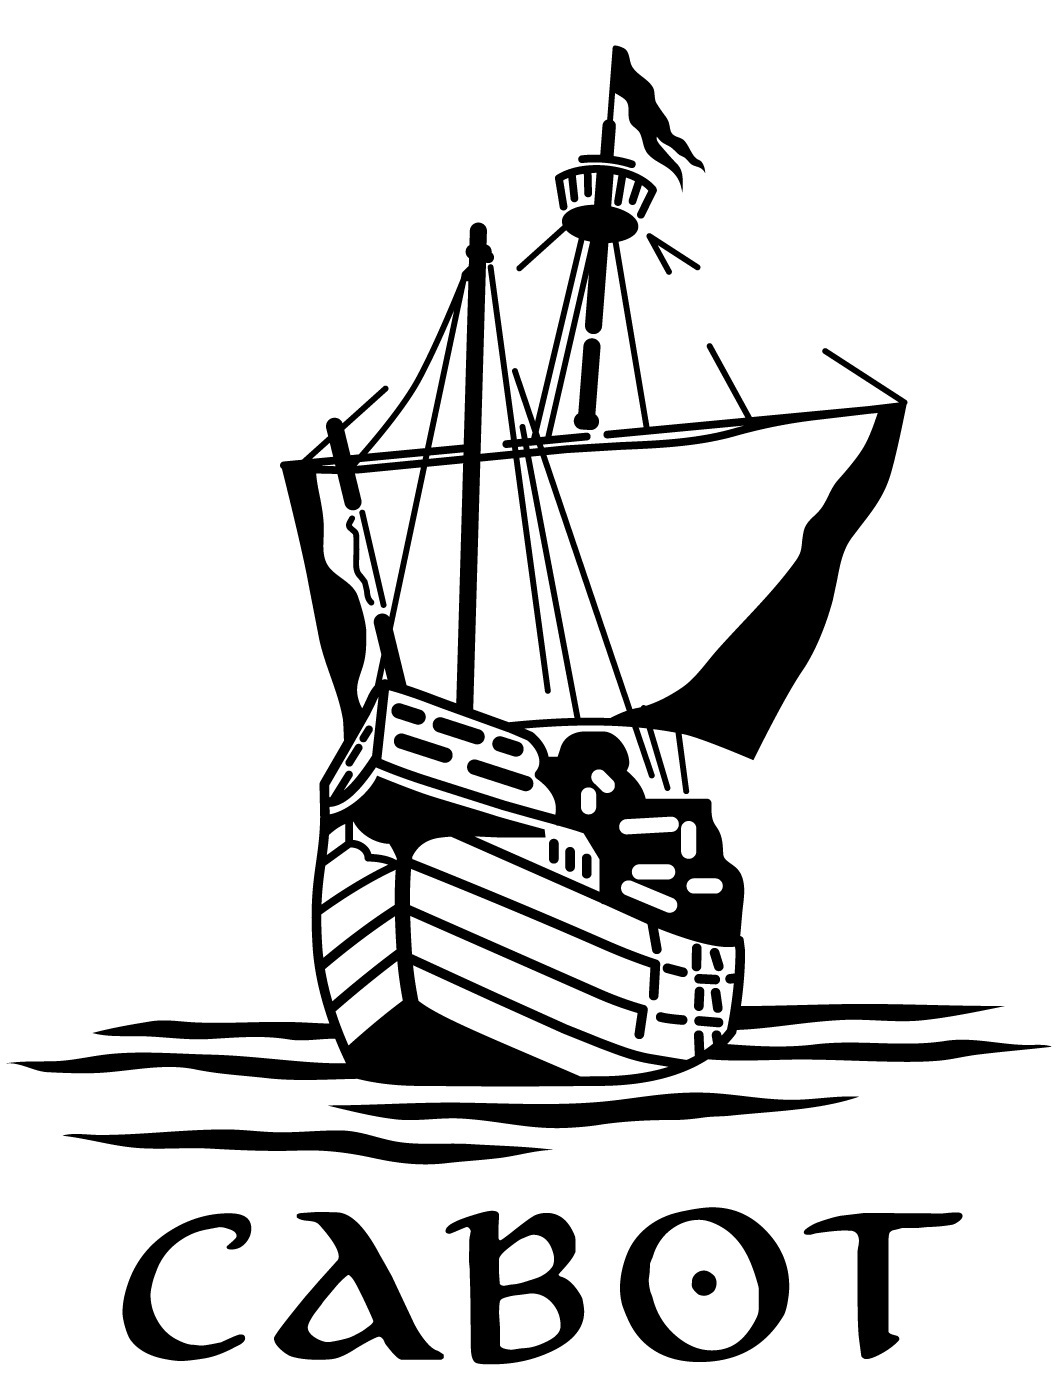 john cabot coloring pages - photo#29